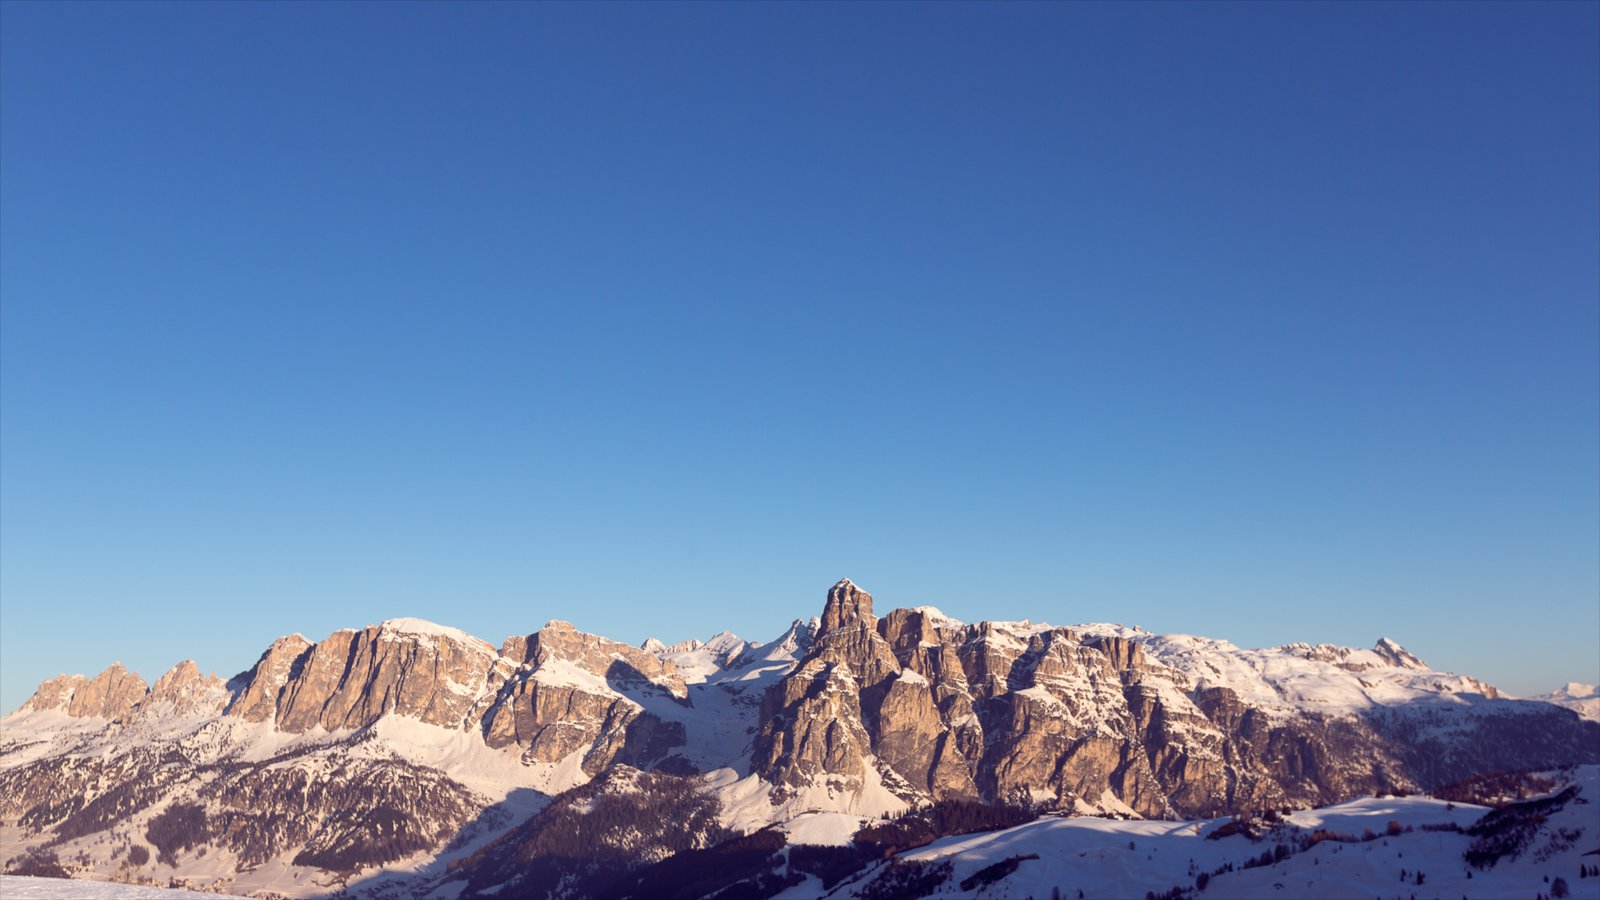 Corvara in Badia which includes mountains, snow and landscape views